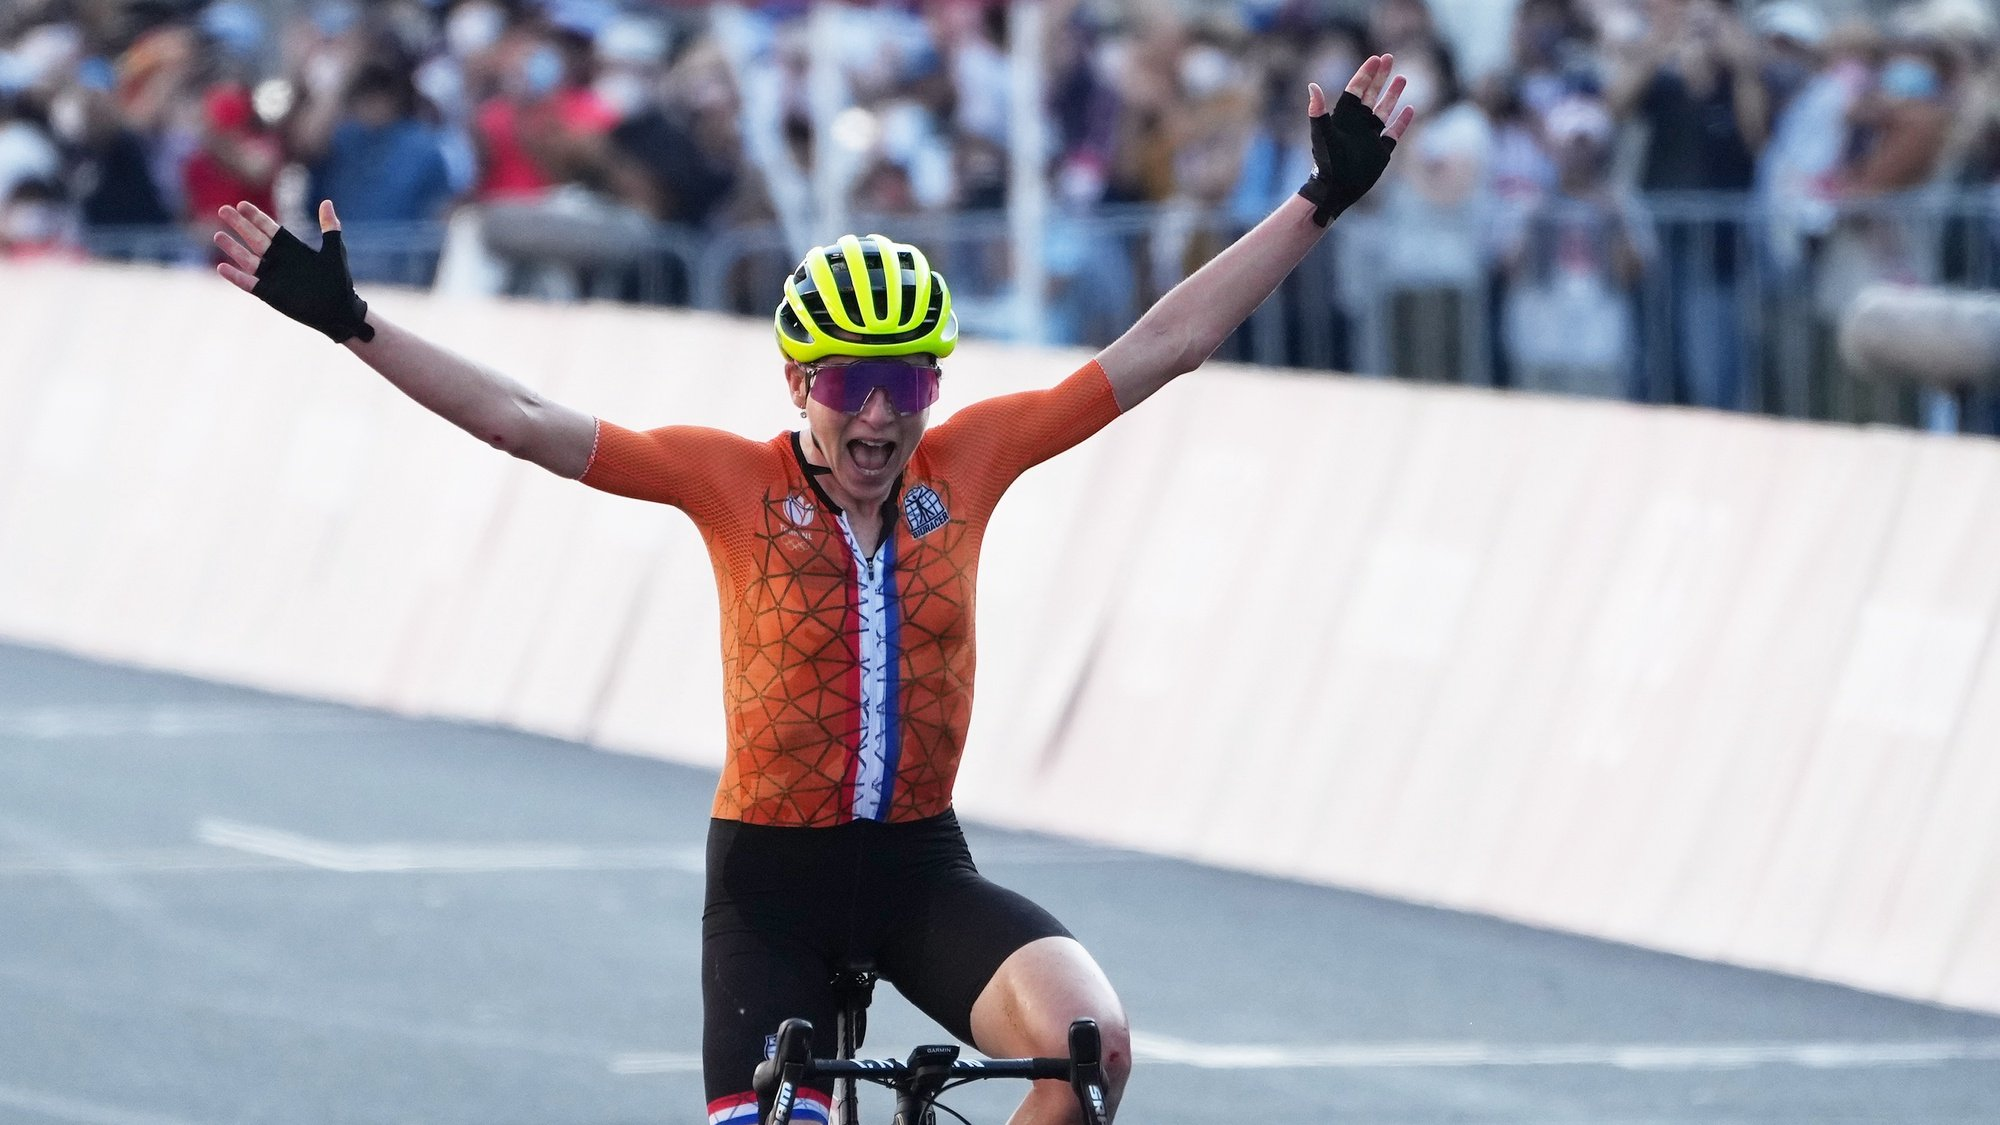 epa09364074 Annemiek van Vleuten of the Netherlands celebrates as she crosses the finish line in 4th place in the Women's Road Cycling race of the Tokyo 2020 Olympic Games at the Fuji International Speedway in Oyama, Japan, 25 July 2021.  EPA/CHRISTOPHER JUE